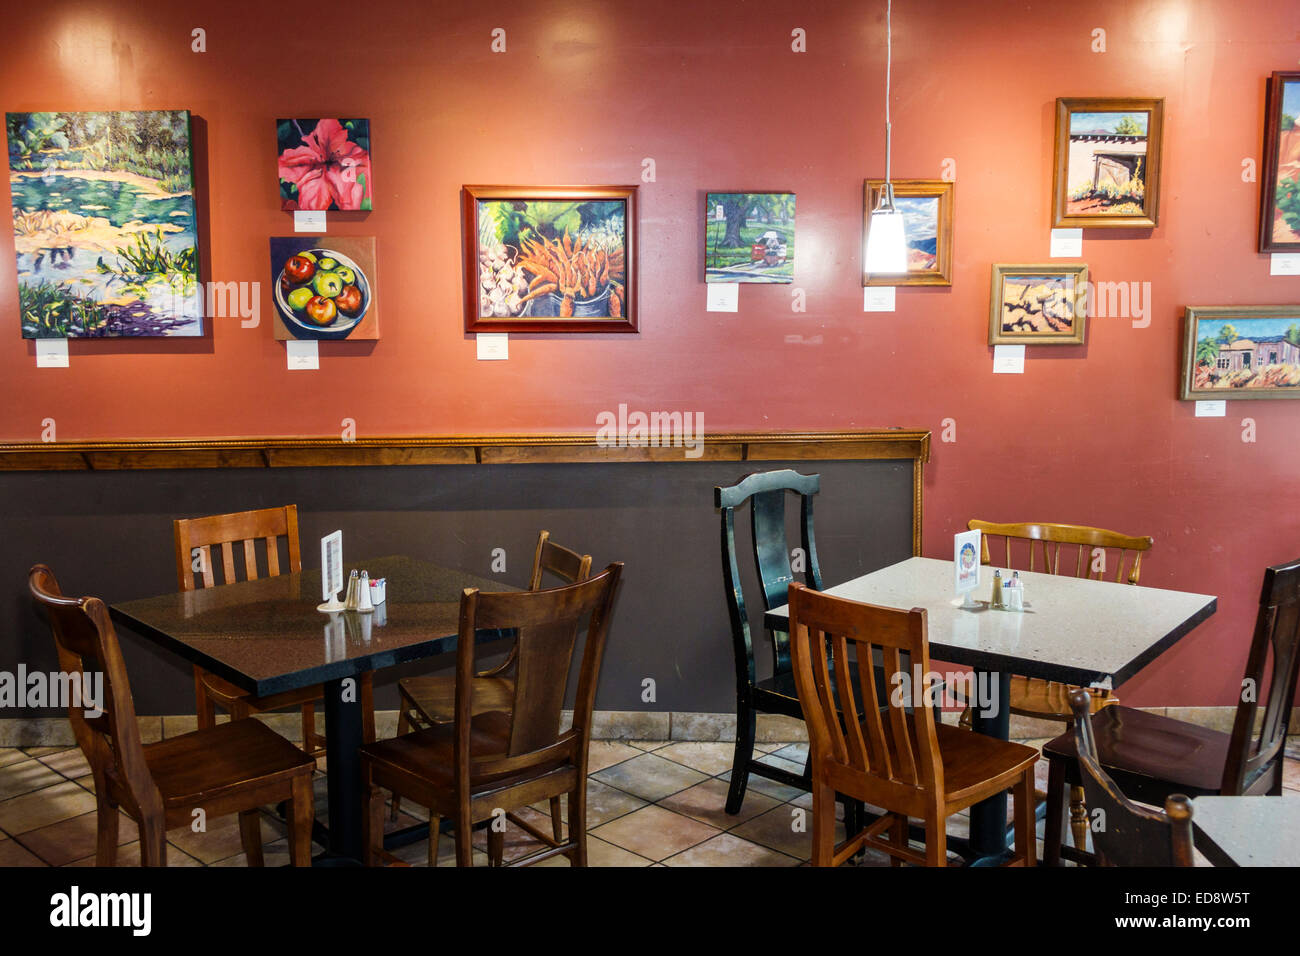 Chaises De Restaurant à Vendre Bloomington Illinois Kelly S Bakery And Cafe Coffee House